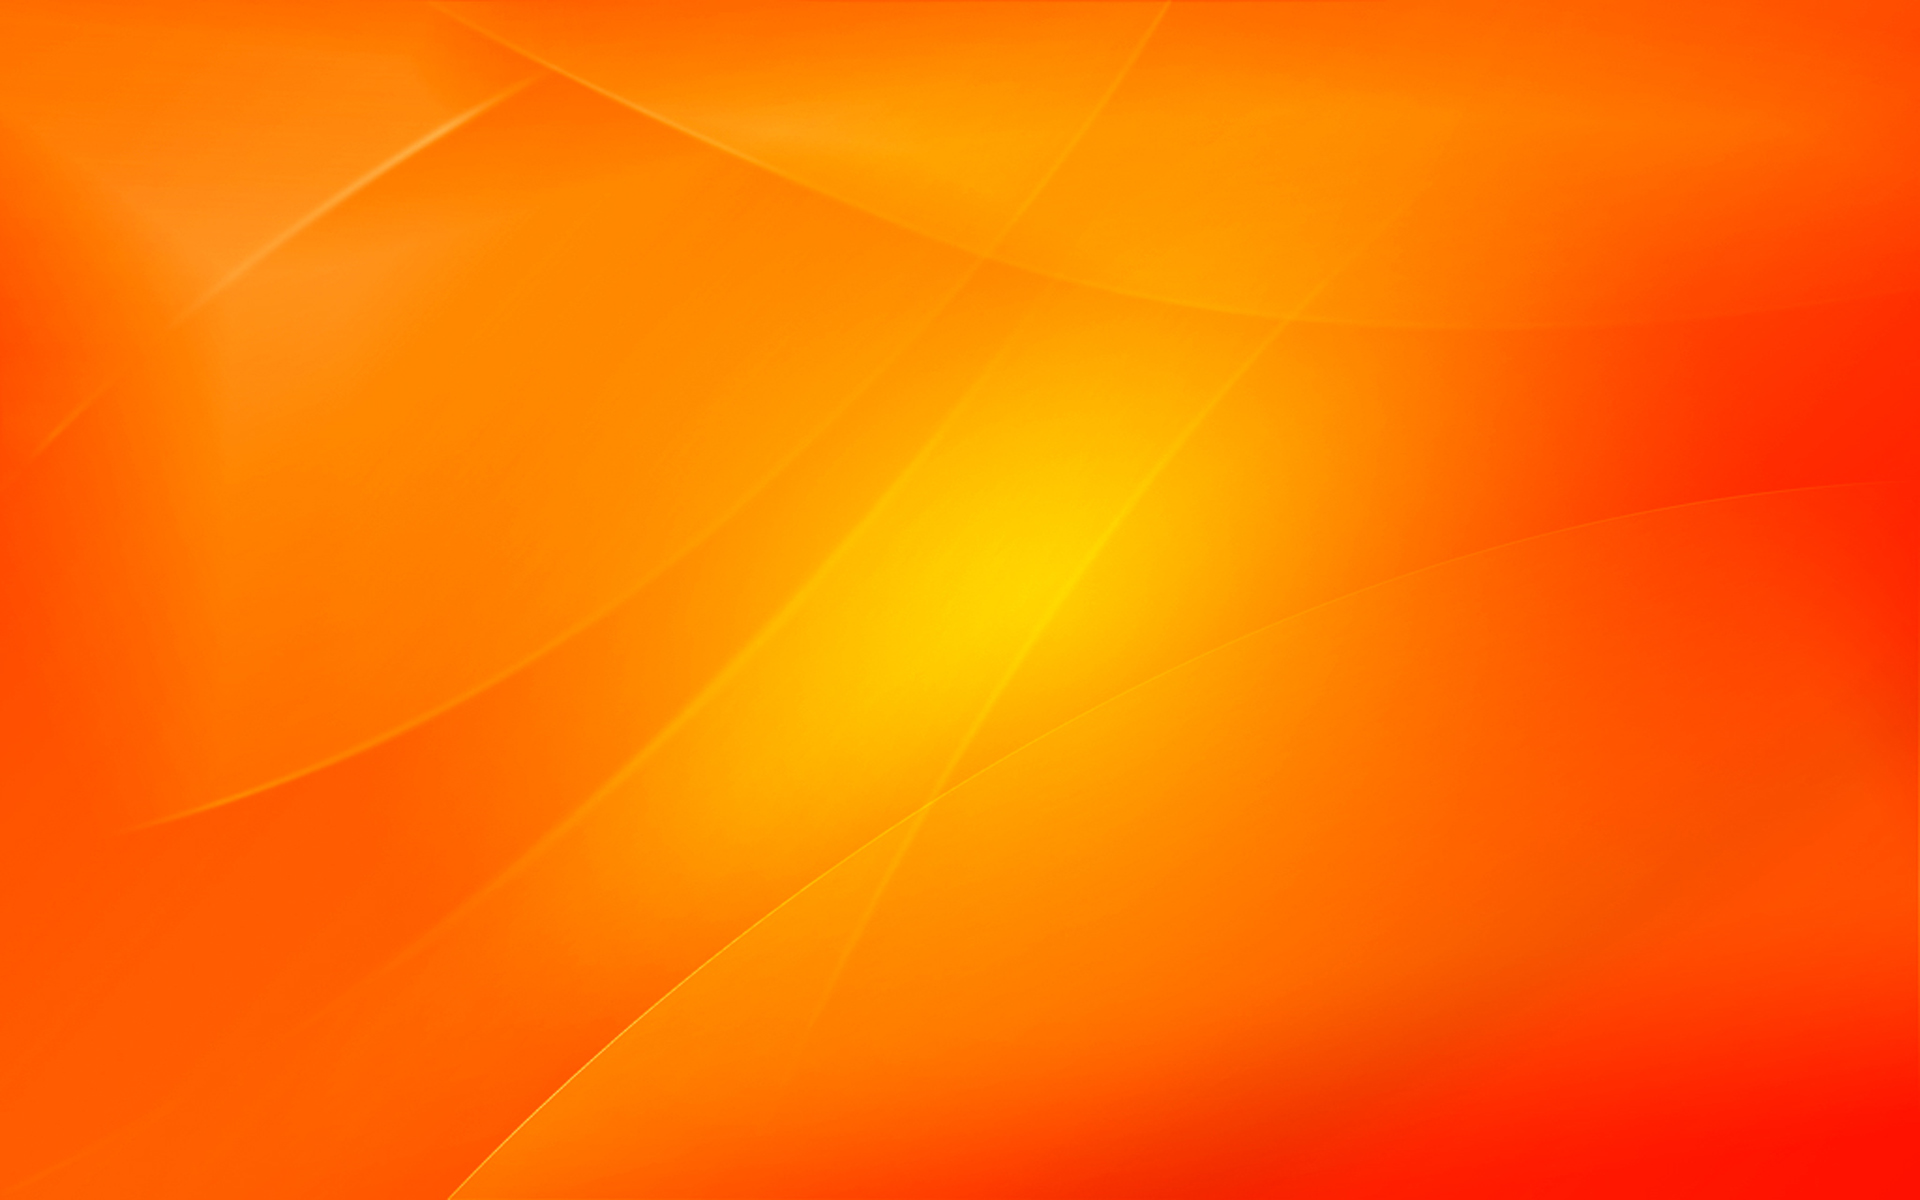 Cool Orange Background Designs Images amp Pictures   Becuo 1920x1200